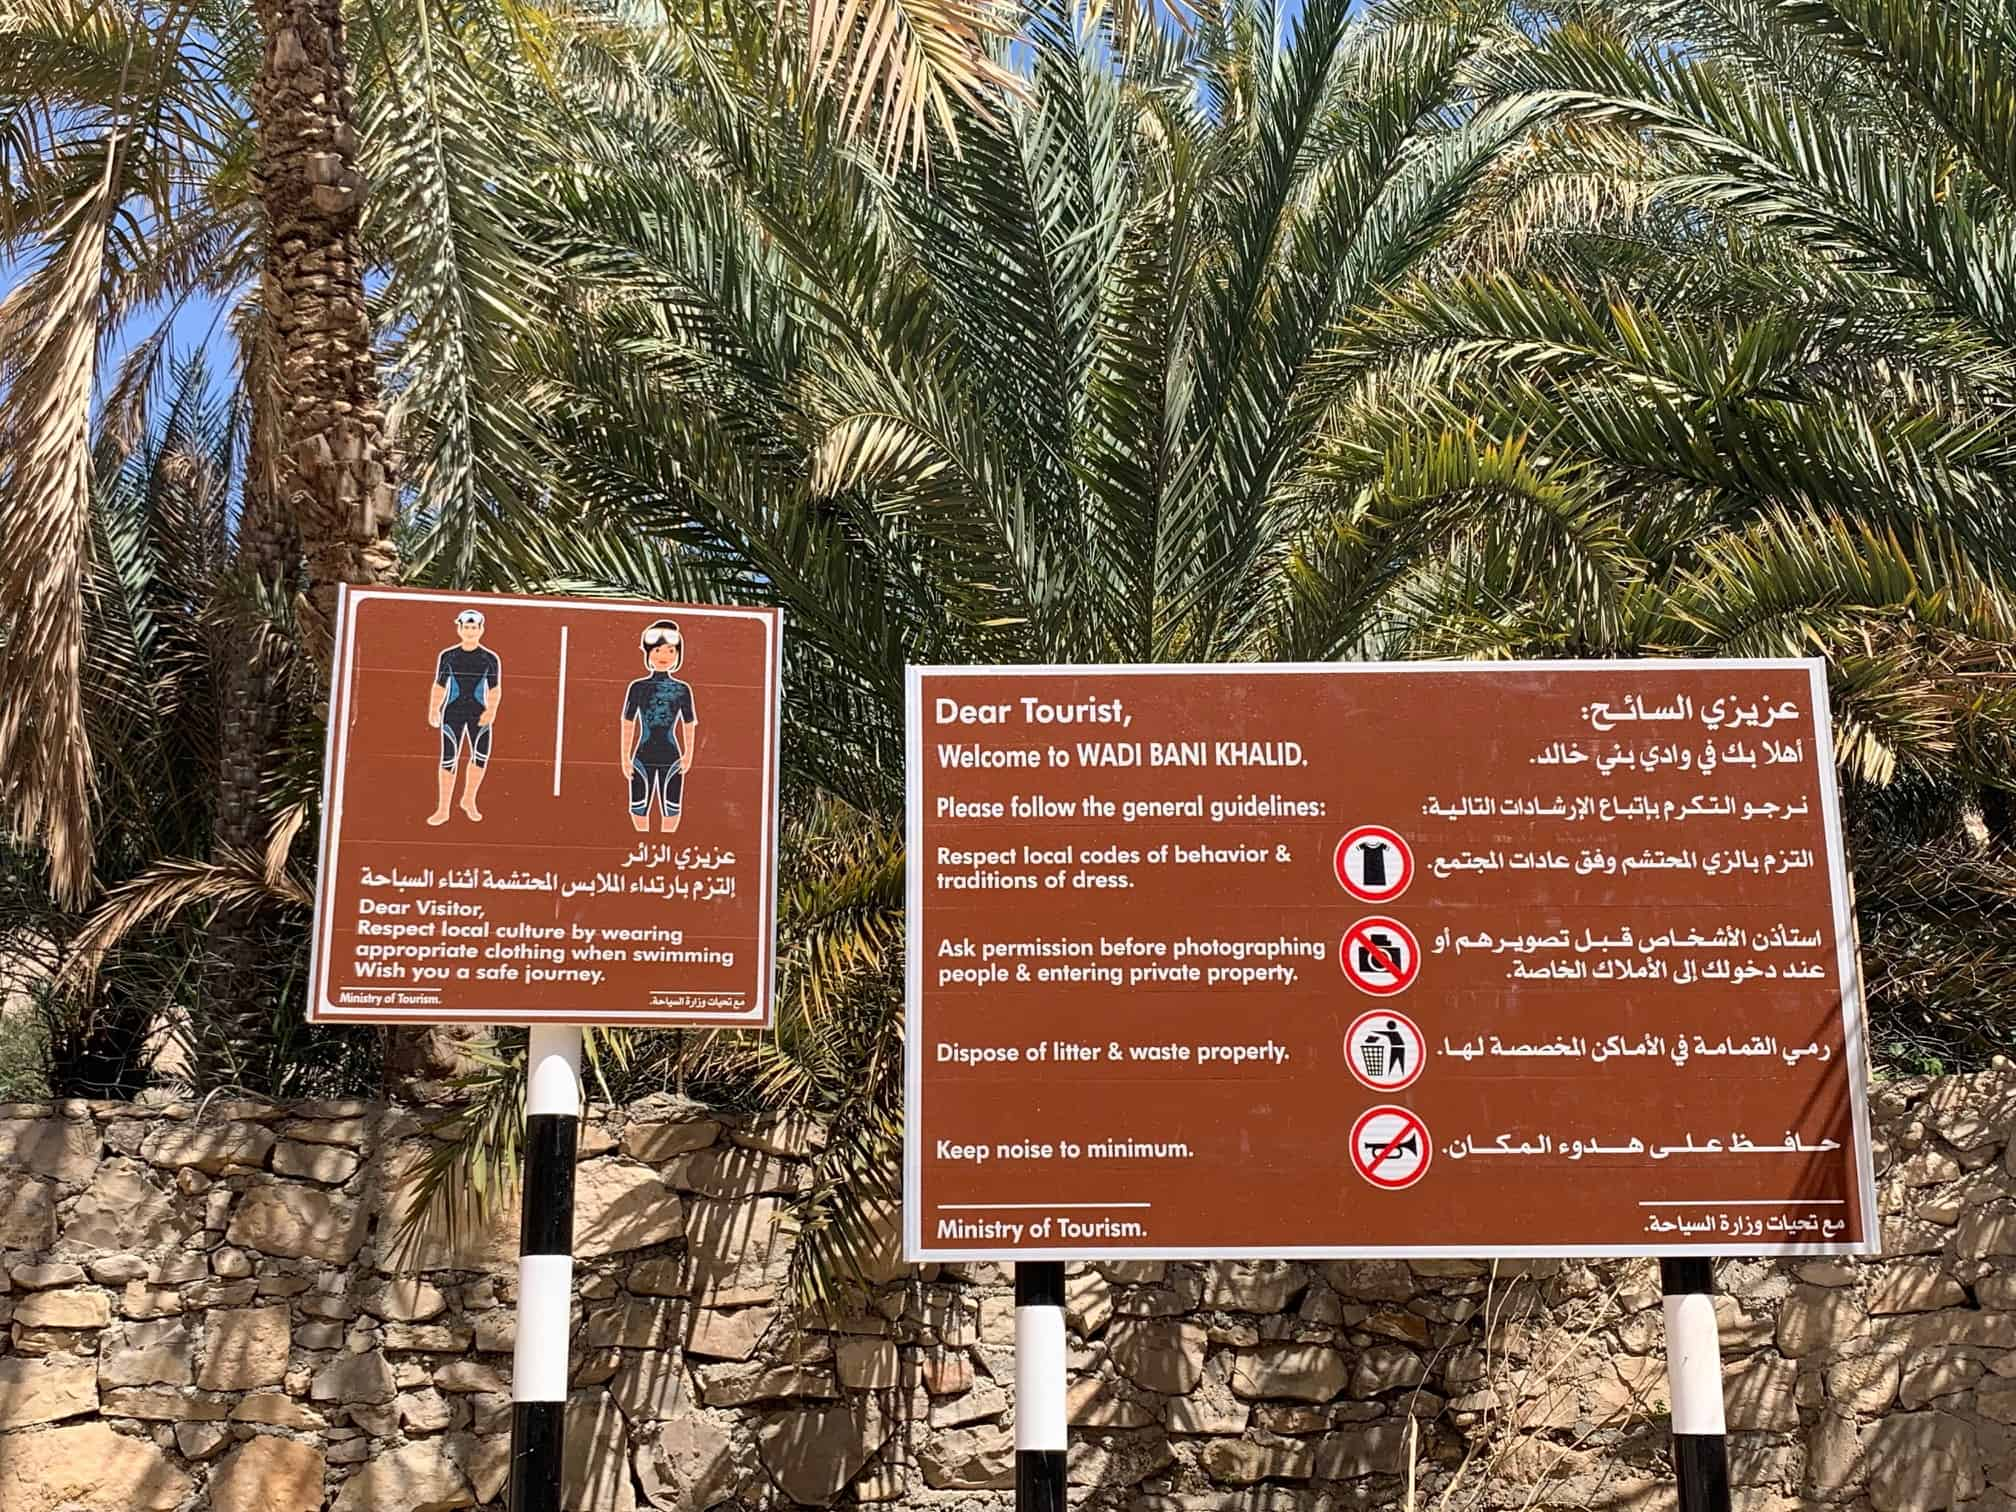 modesty guidelines at Wadi Bani Khalid